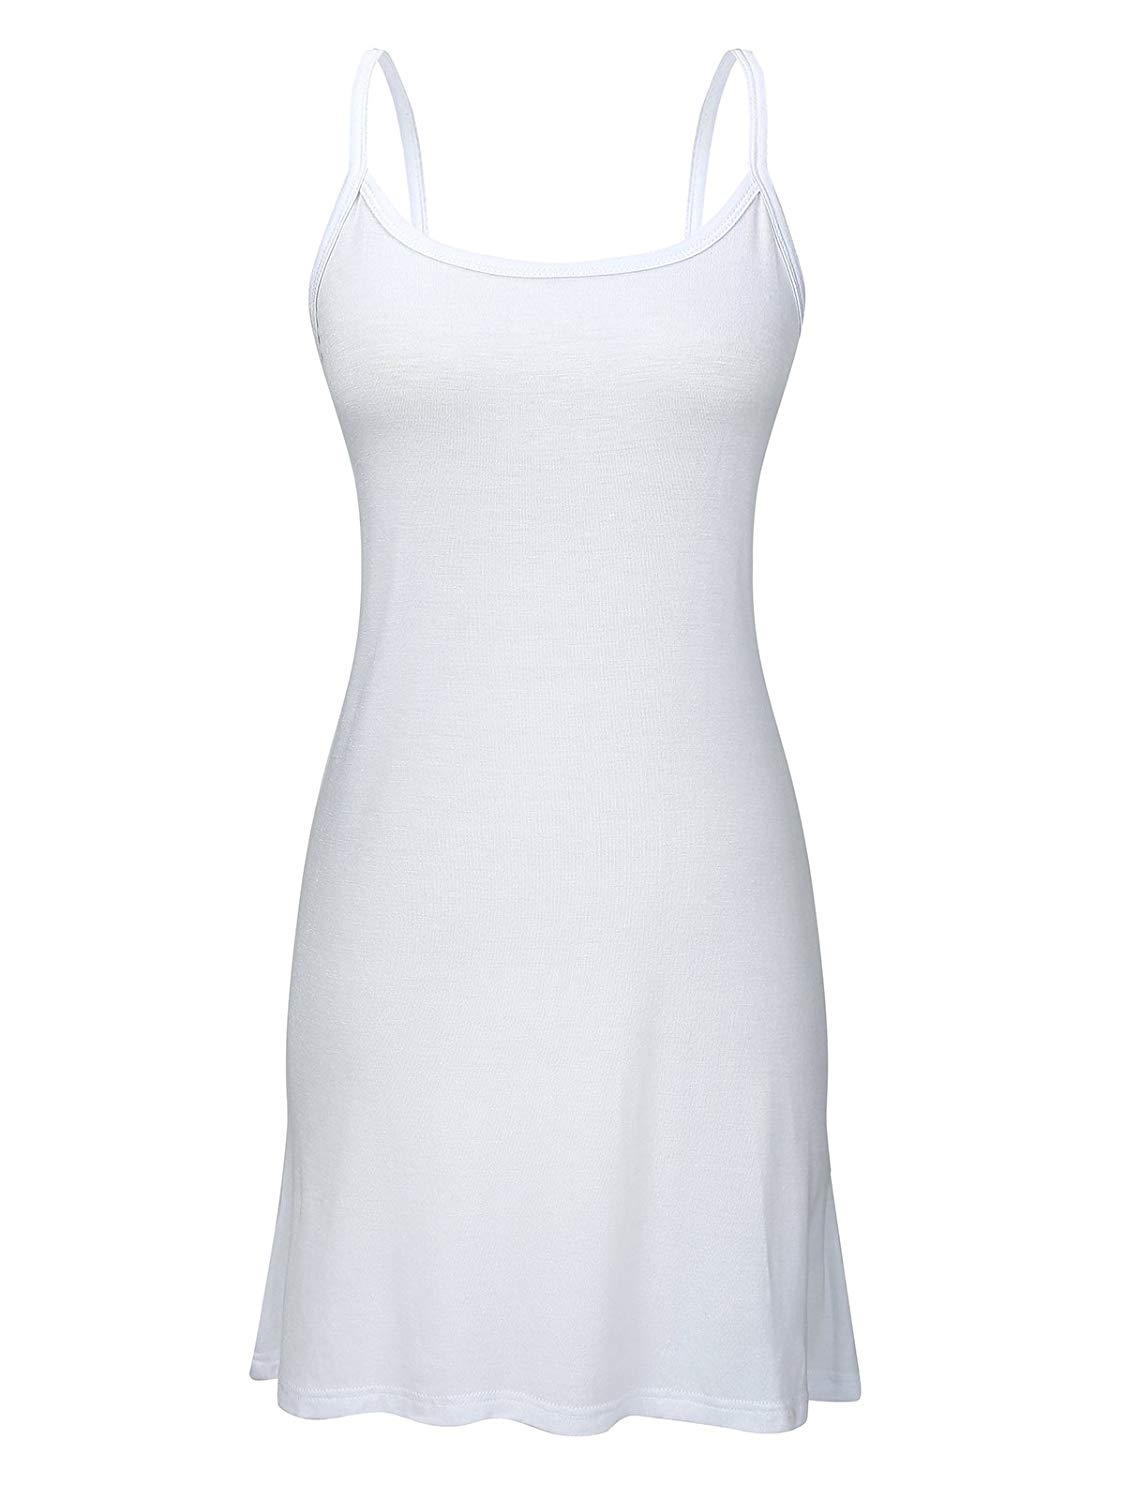 Women s Stretch Cotton Cami Basic Solid Long Length Adjustable Spaghetti Strap Tank Top